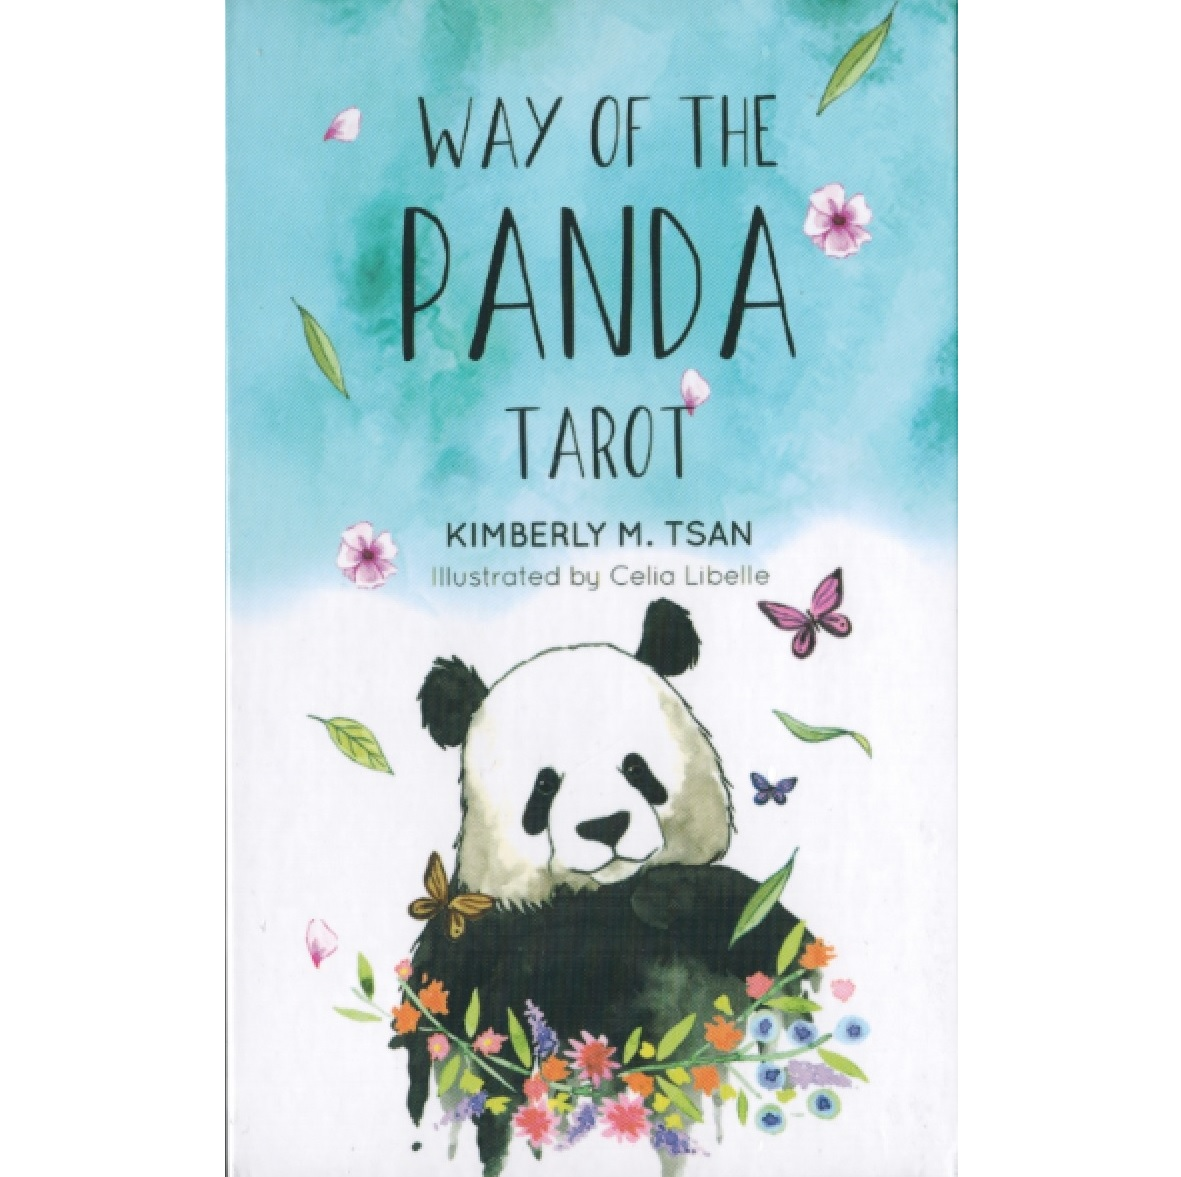 Way of the Panda Tarot 15